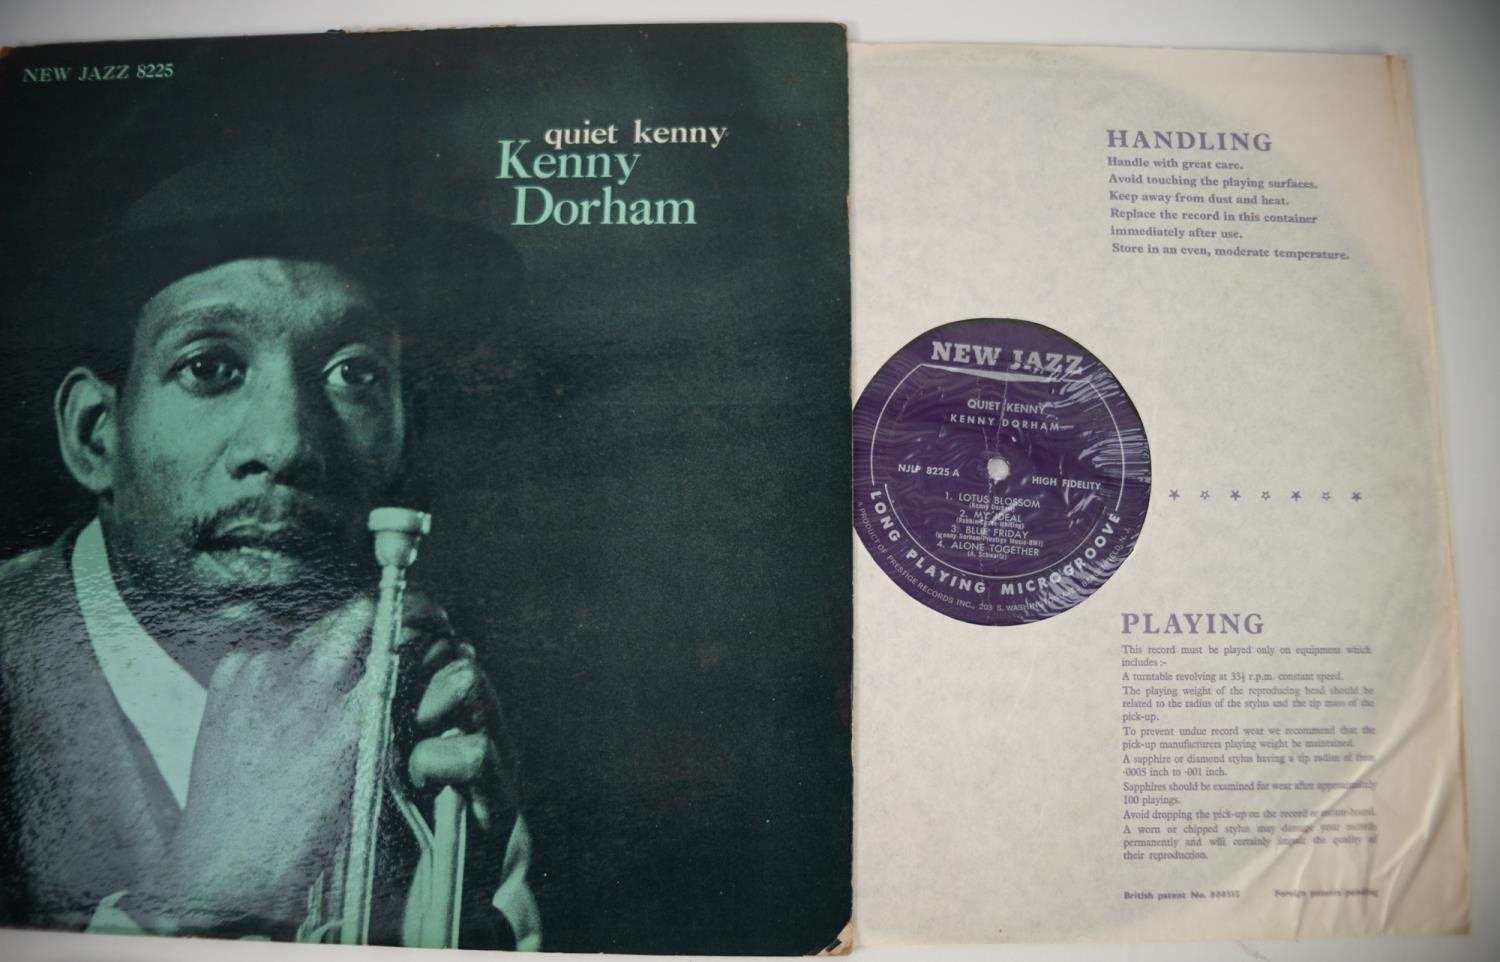 JAZZ, VINYL RECORDS- D IS FOR KENNY DORHAM-QUIET KENNY, NEW JAZZ (NJLP 8225). Original US pressing - Image 3 of 7